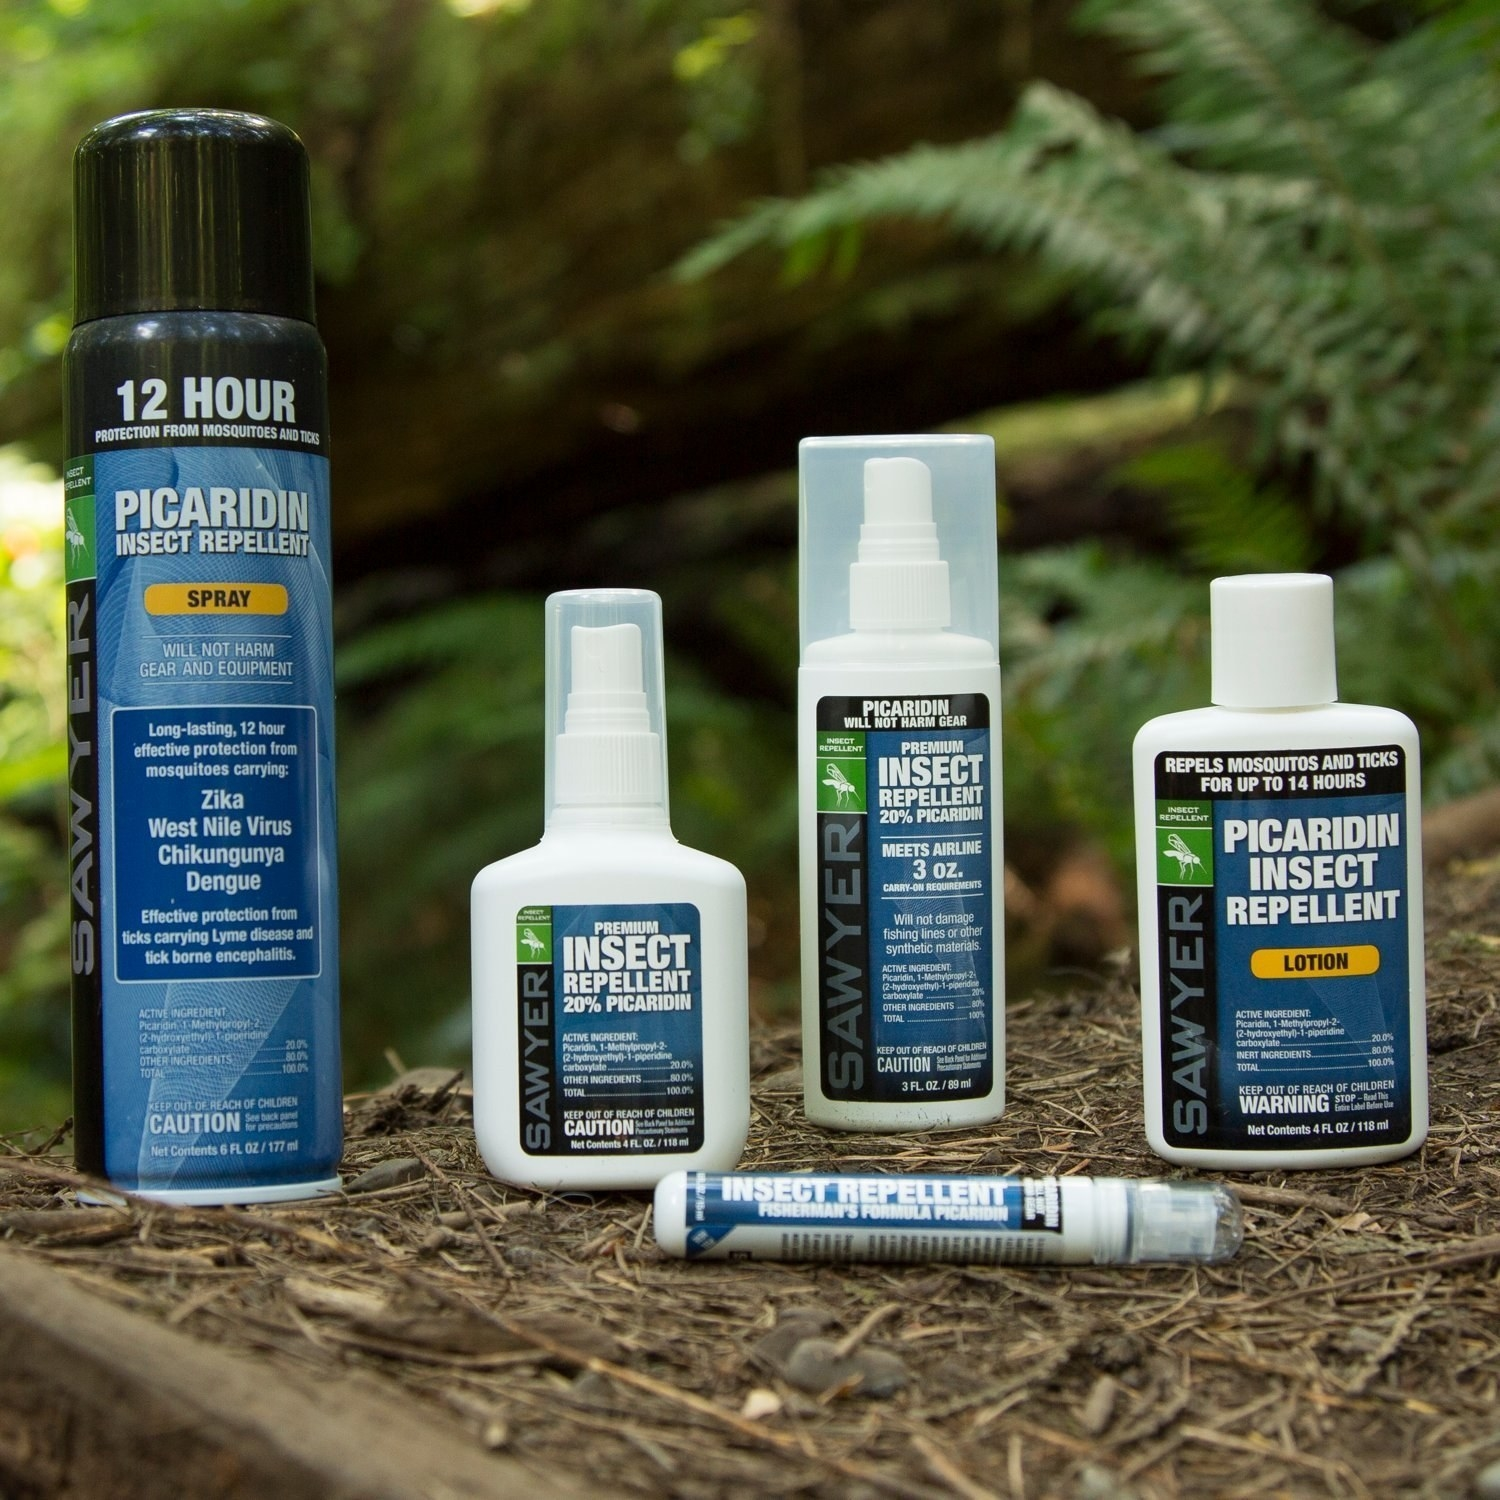 """Five different containers of the repellant: a 12 hour spray, two sizes of a """"regular"""" spray, a lotion, and a tiny travel spray"""